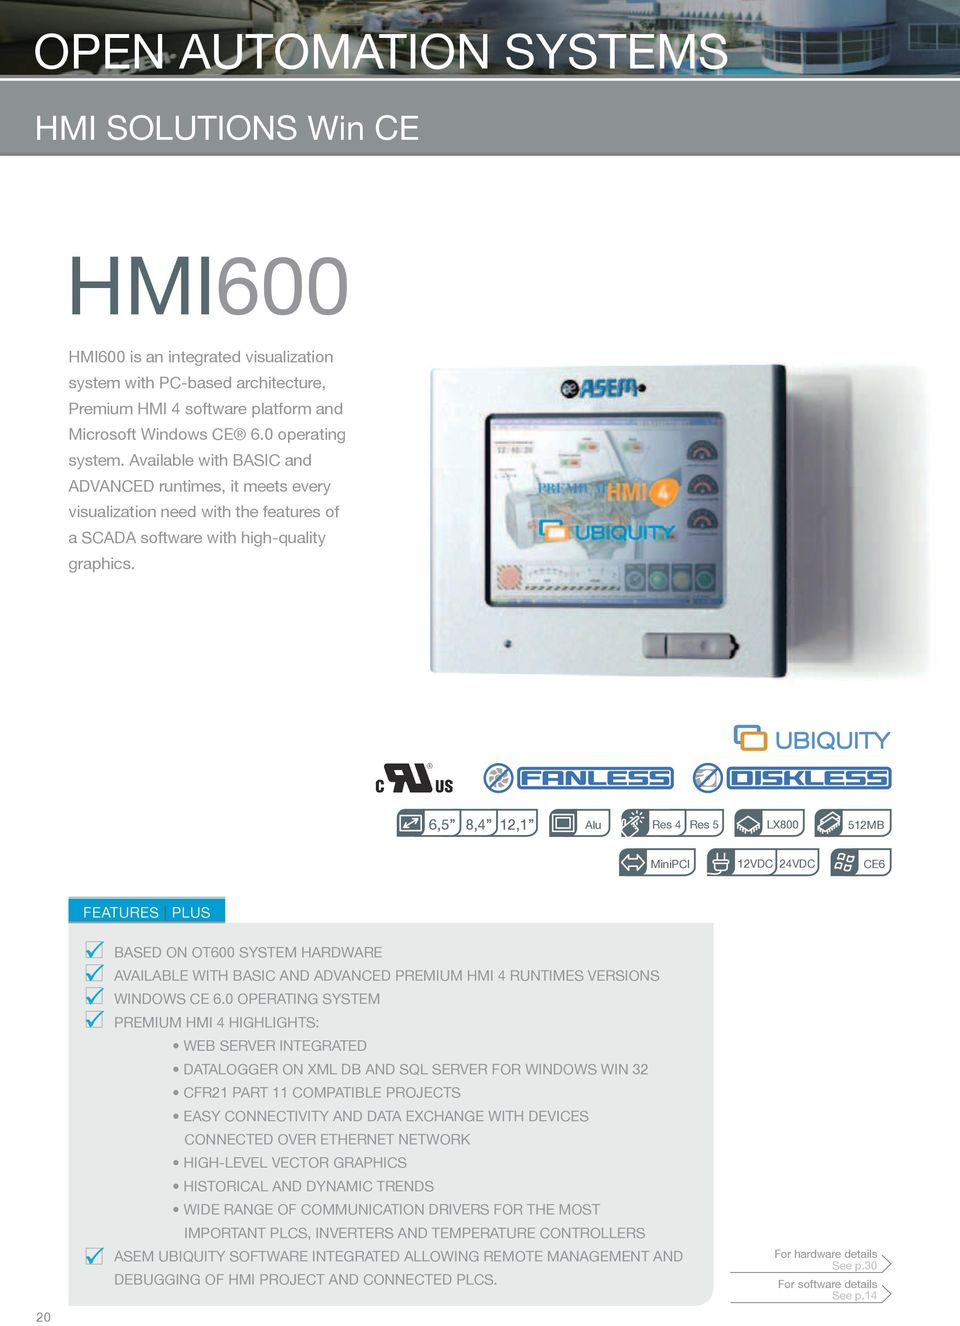 6,5 8,4 12,1 Alu Res 4 Res 5 LX800 512MB MiniPCI 12VDC 24VDC CE6 FEATURES PLUS 20 Based on OT600 system hardware Available with BASIC and ADVANCED Premium HMI 4 runtimes VERSIONS Windows CE 6.